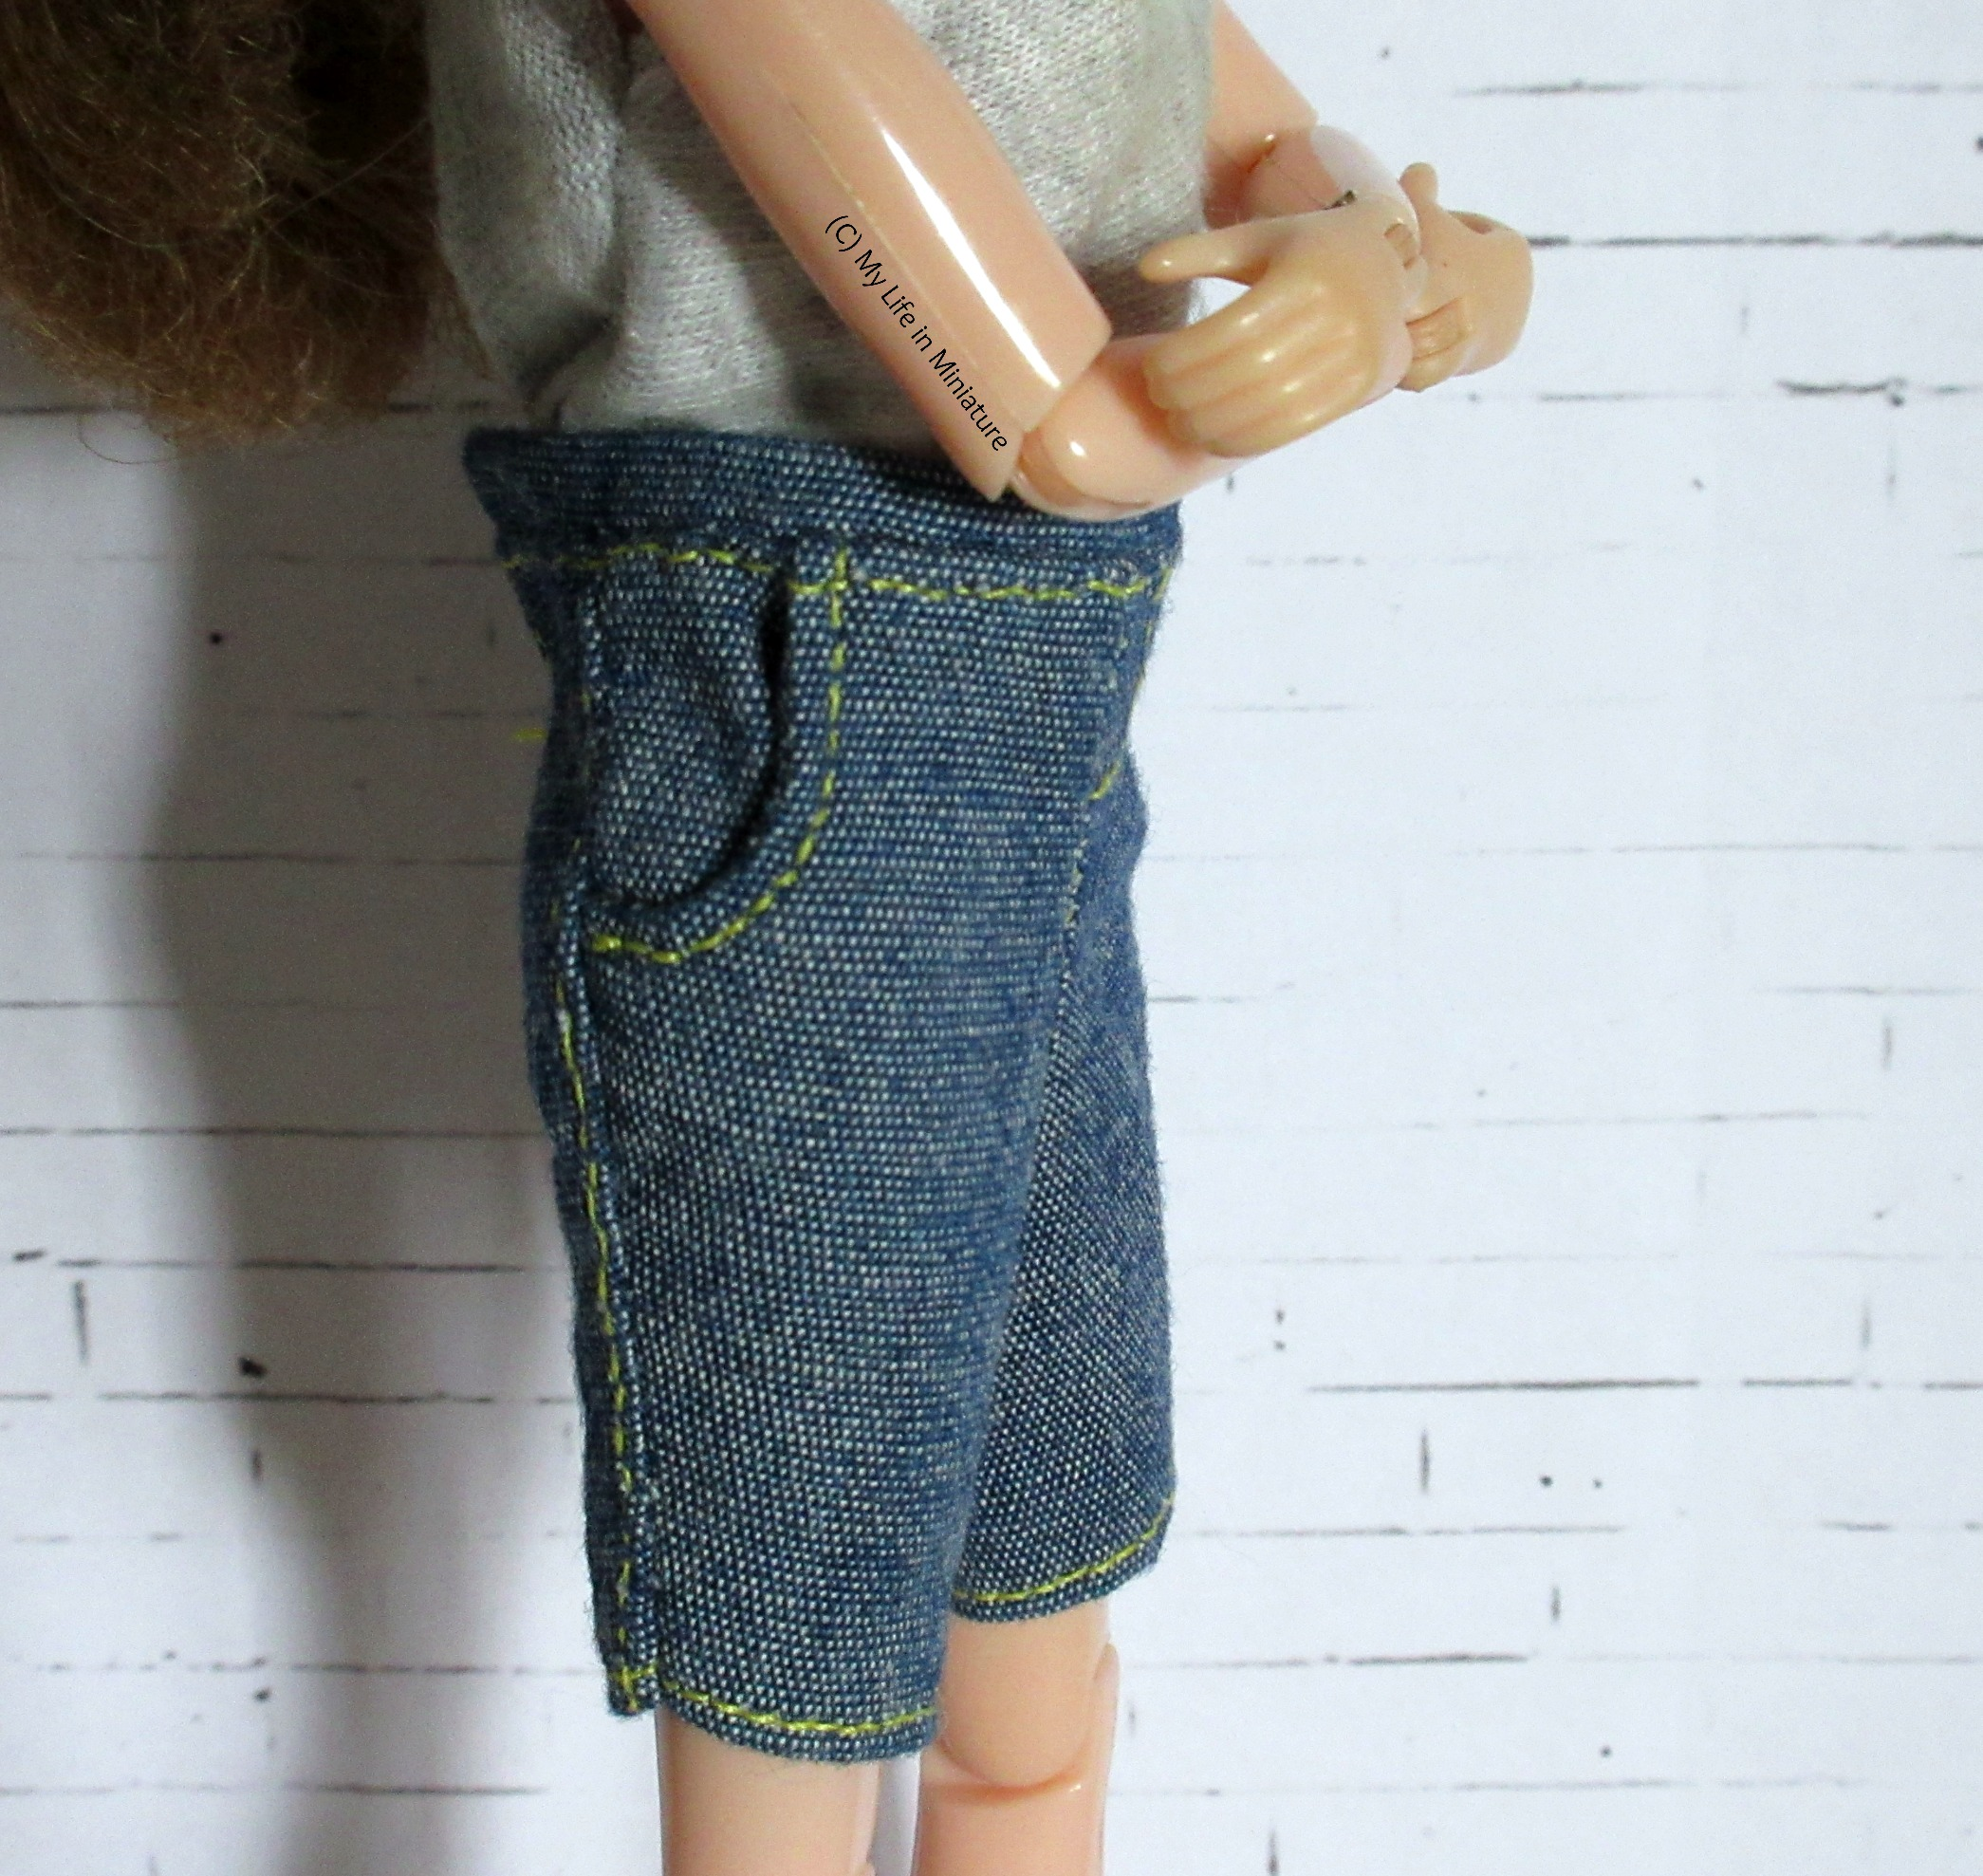 Side-on shot of the denim shorts, highlighting the pocket. The edge is curved in the style of denim jeans' pockets.